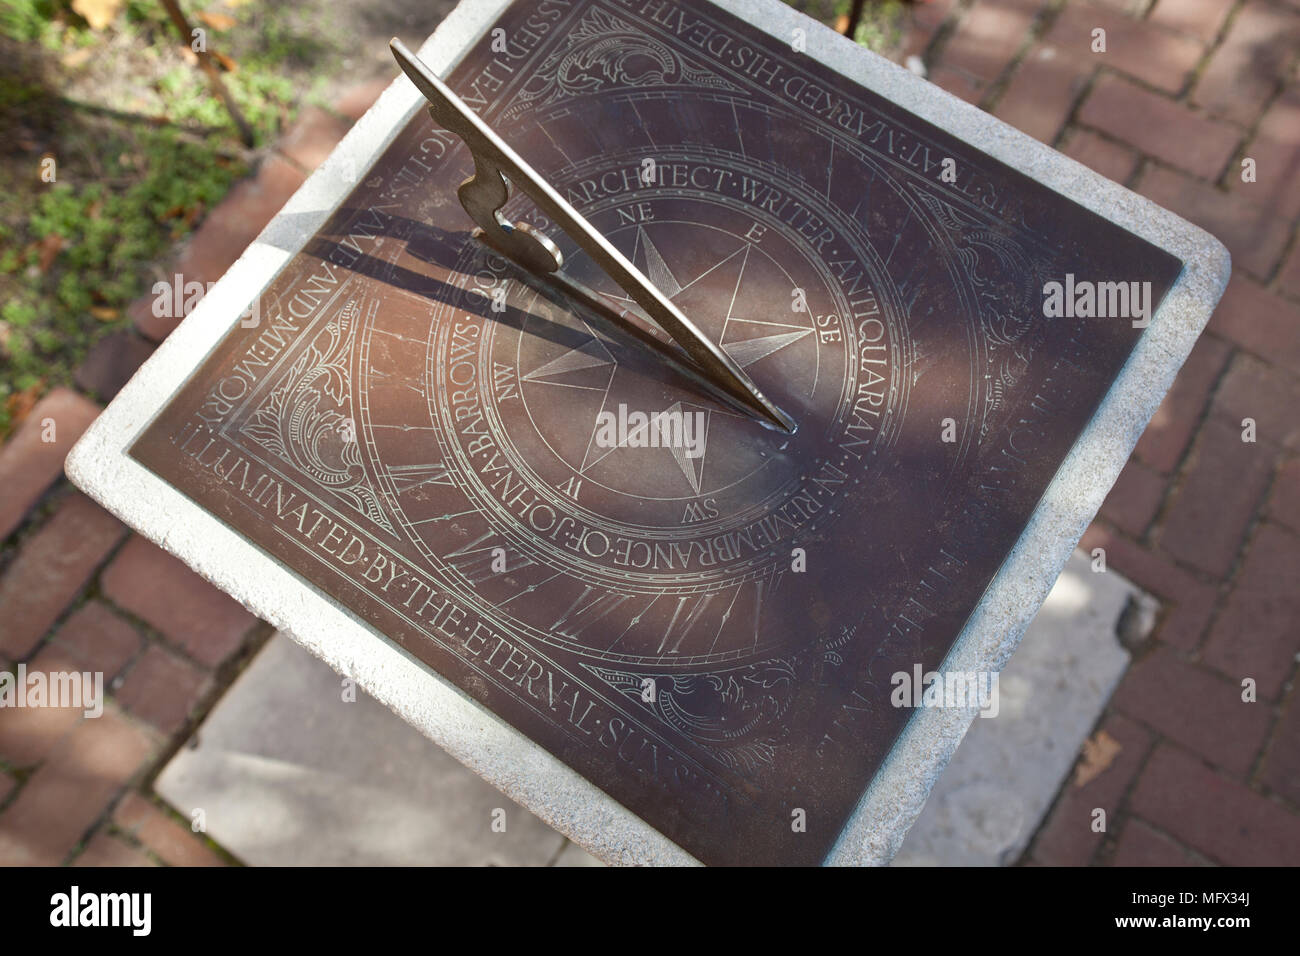 Still life of an antique handmade bronze sundial seen in the courtyard in colonial Williamsburg Virginia - Stock Image